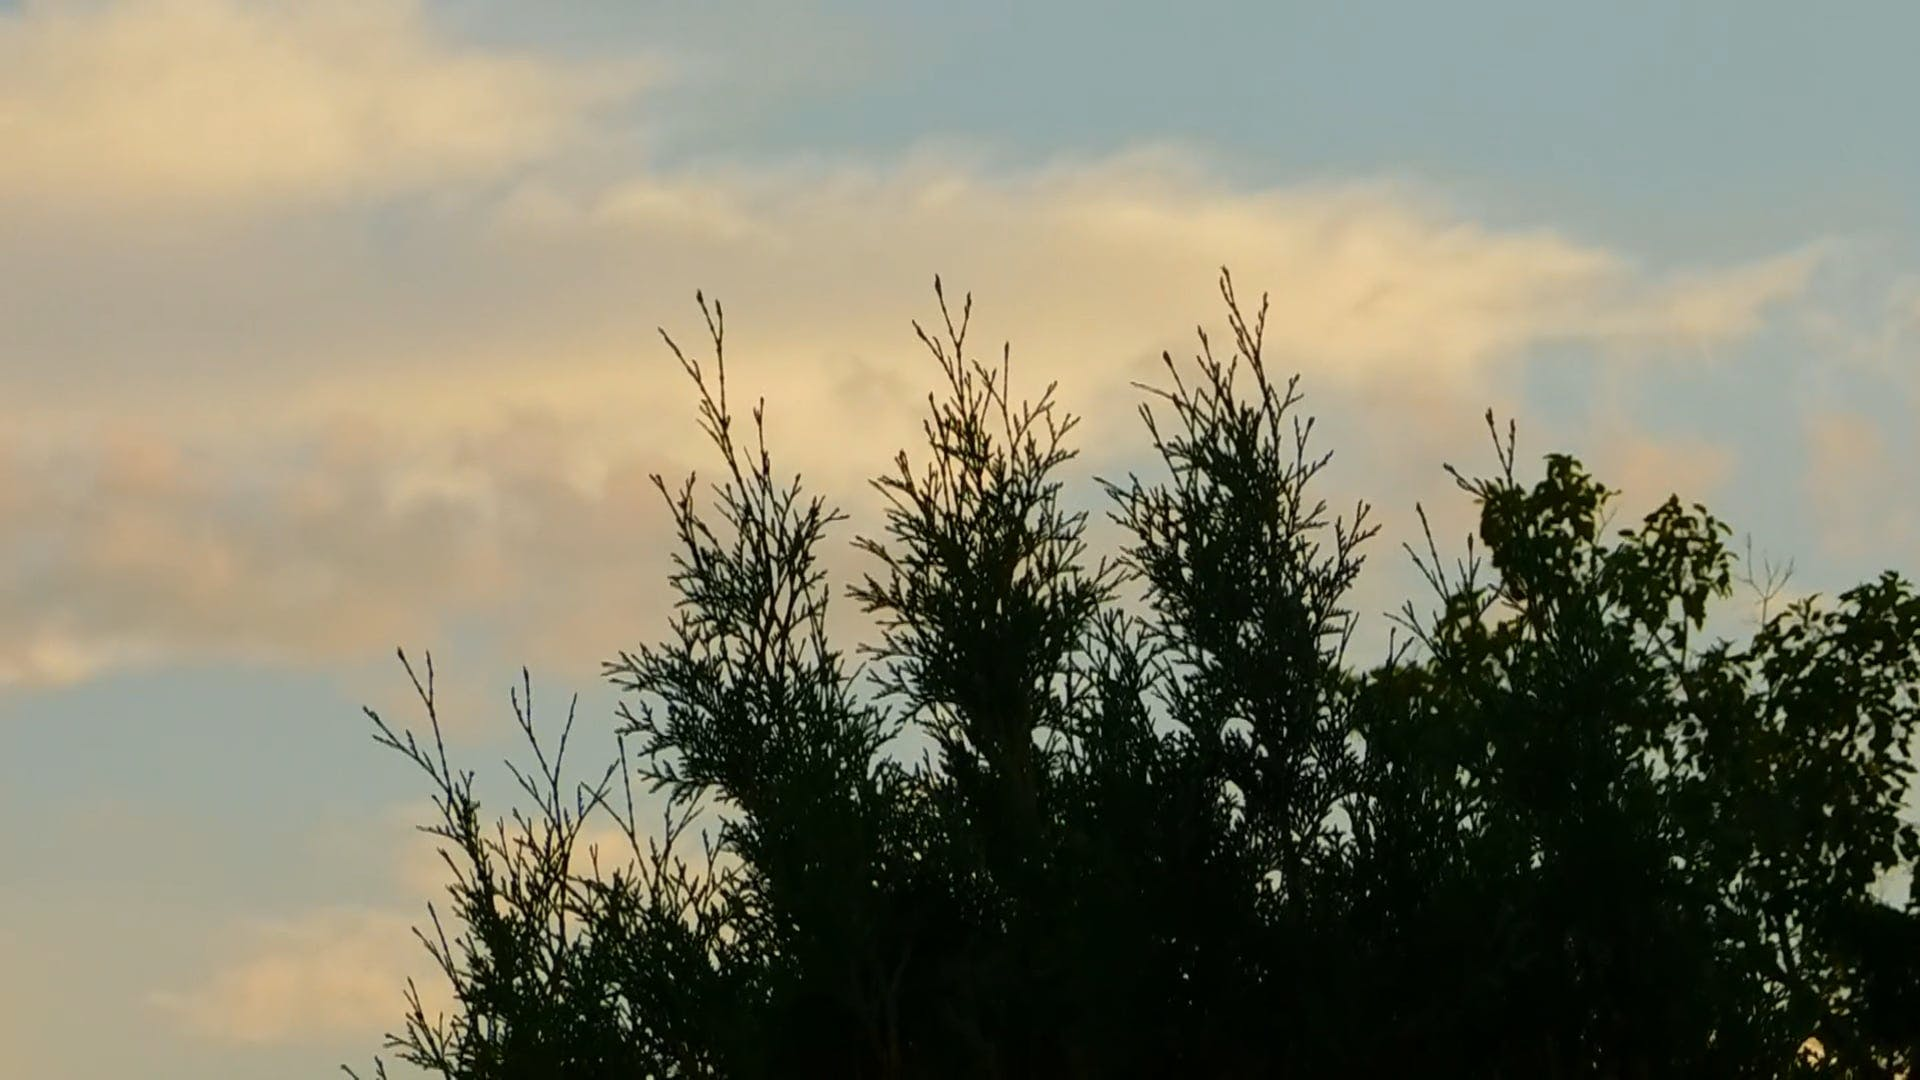 Trees And The Sky At Sunset